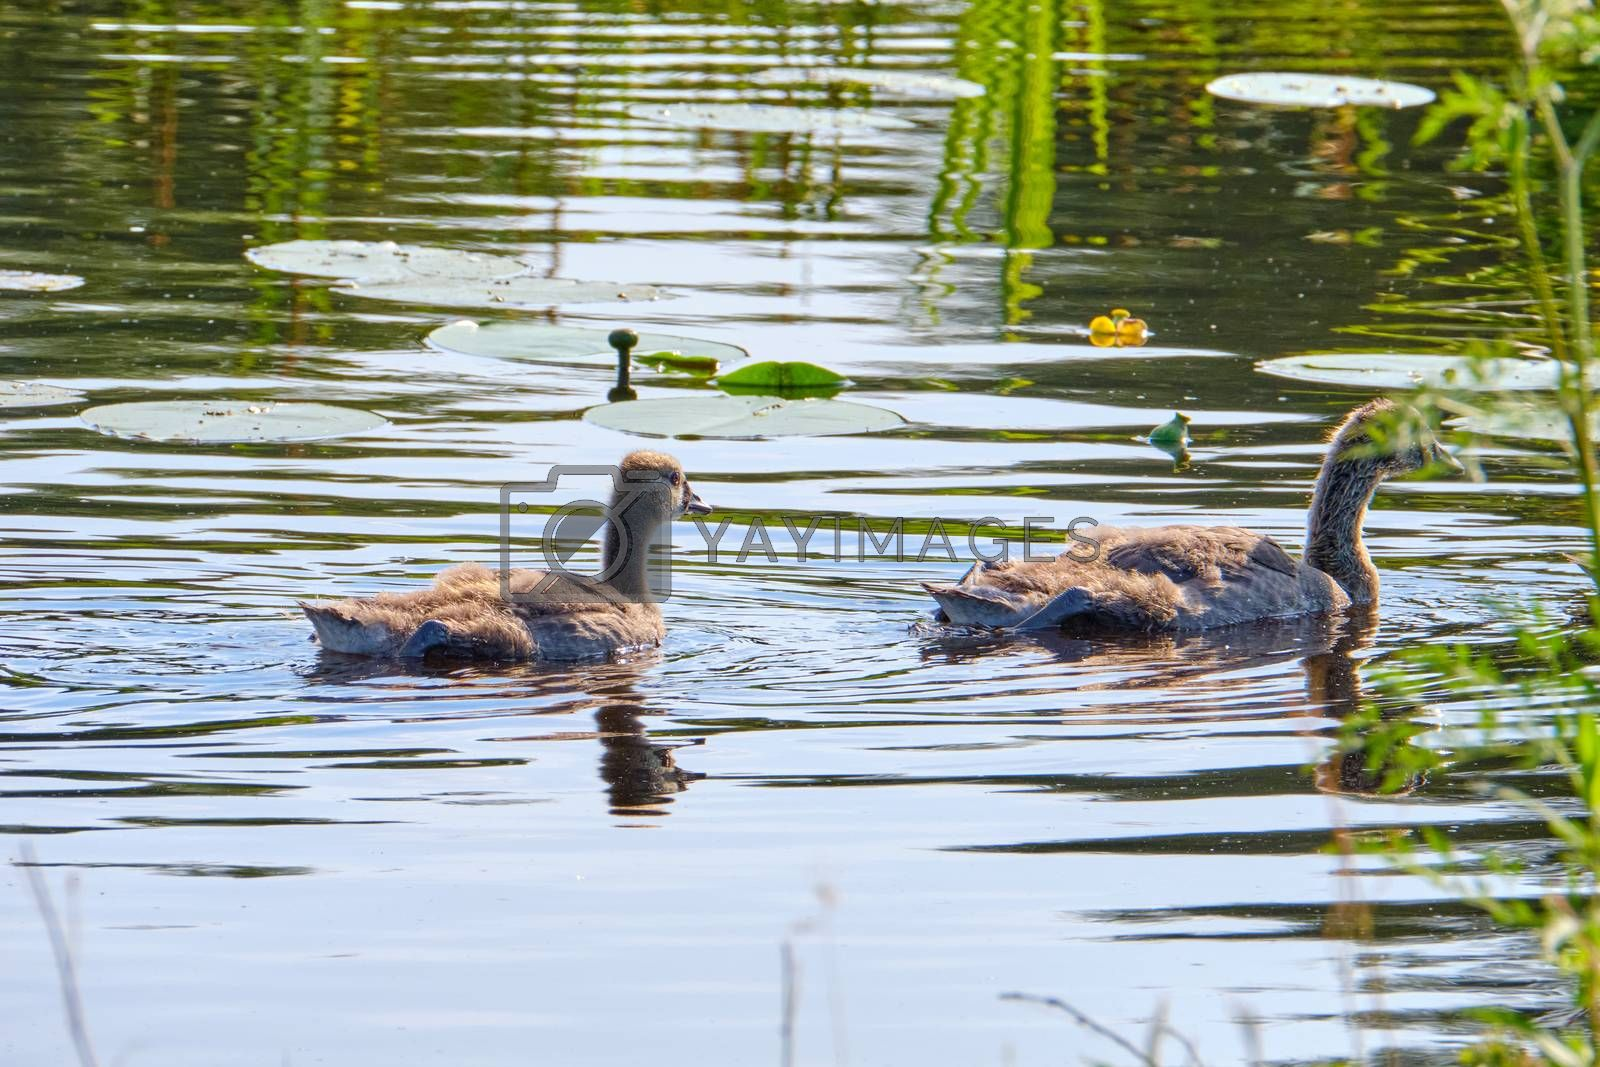 Canada goose, two newly hatched chicks, swimming in the water, soft chicks.